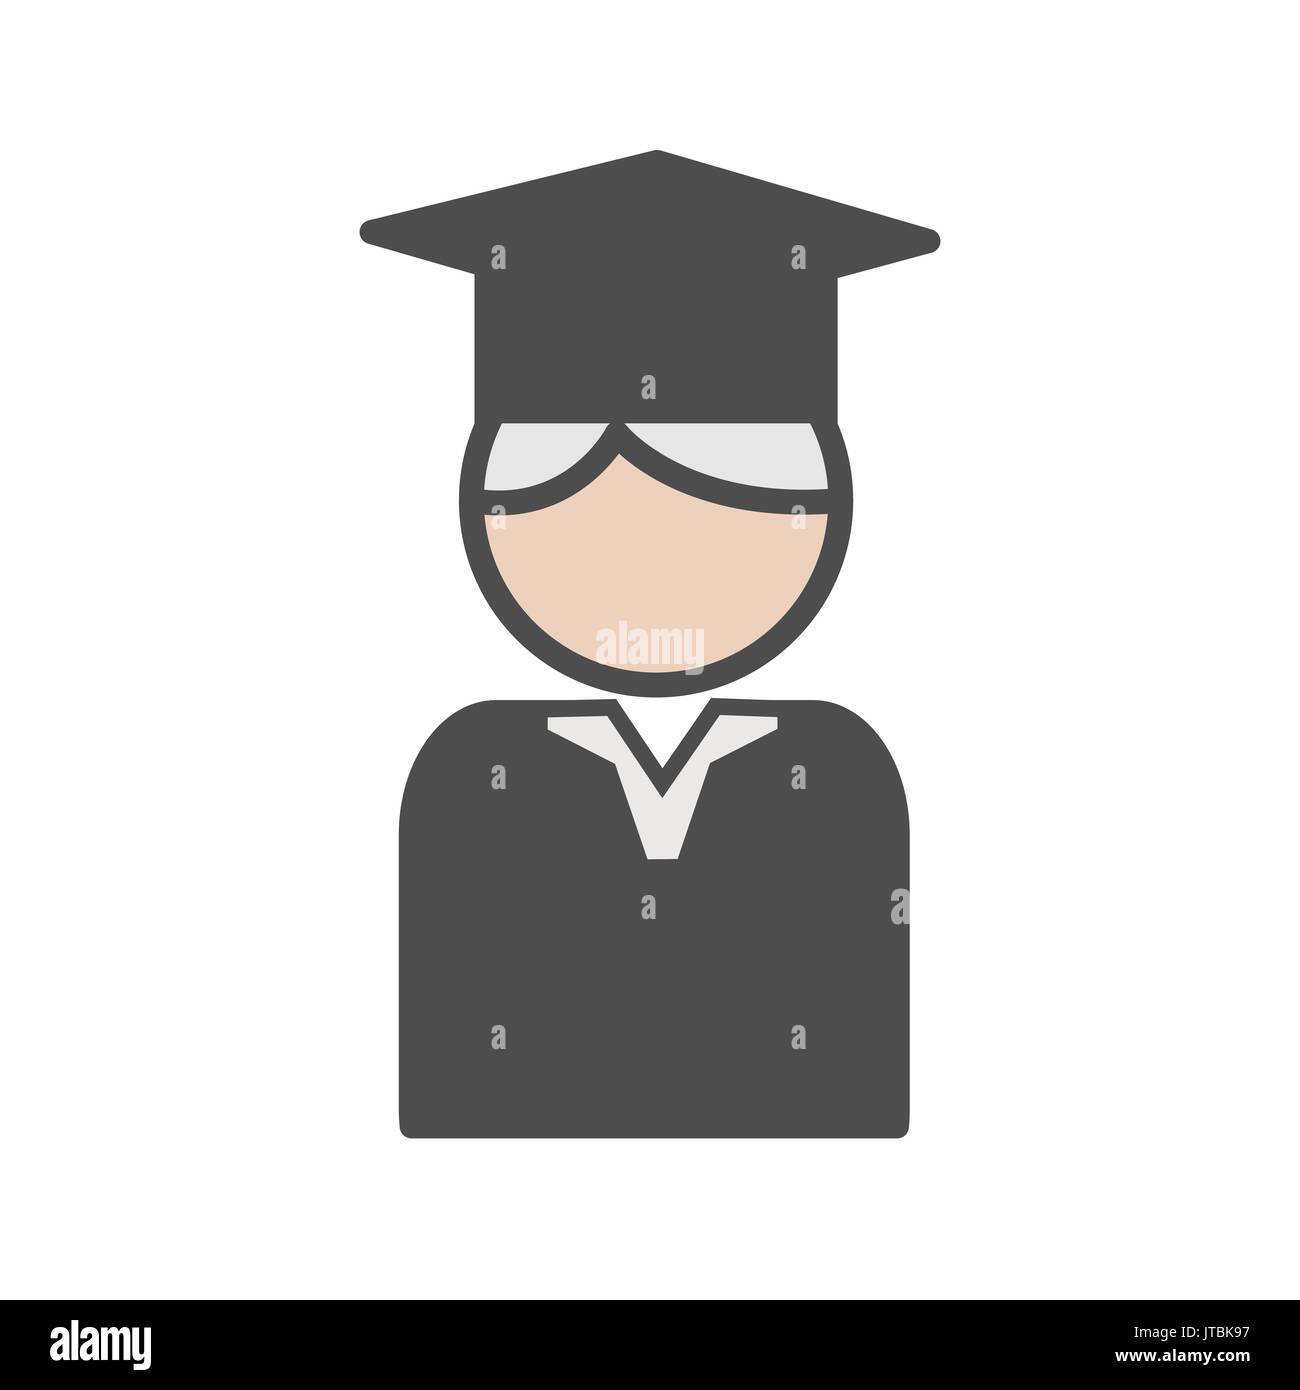 Professor icon with mortarboard and grey hair - Stock Vector